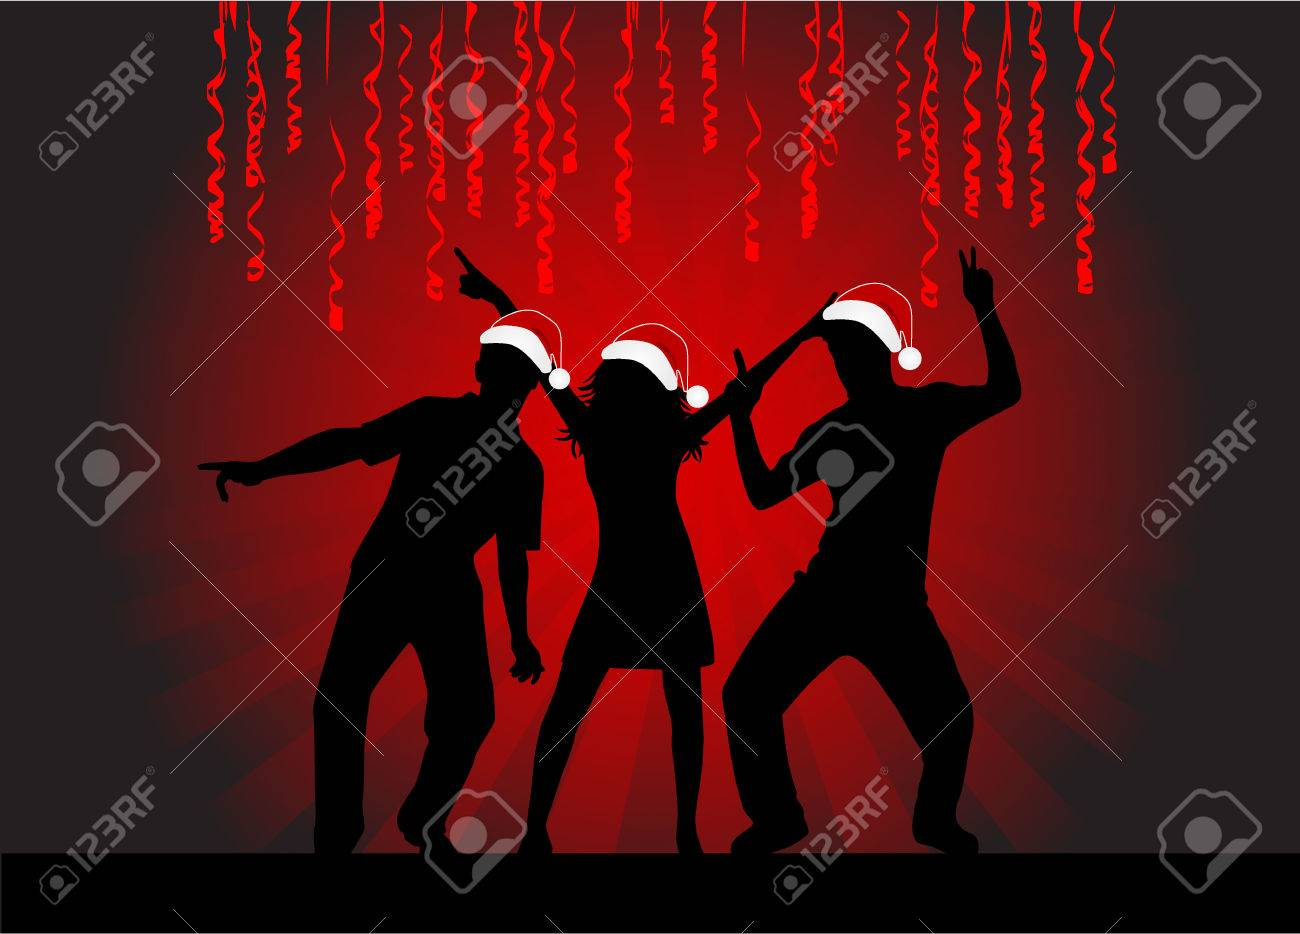 Christmas Time - dancing silhouettes Stock Vector - 8934918